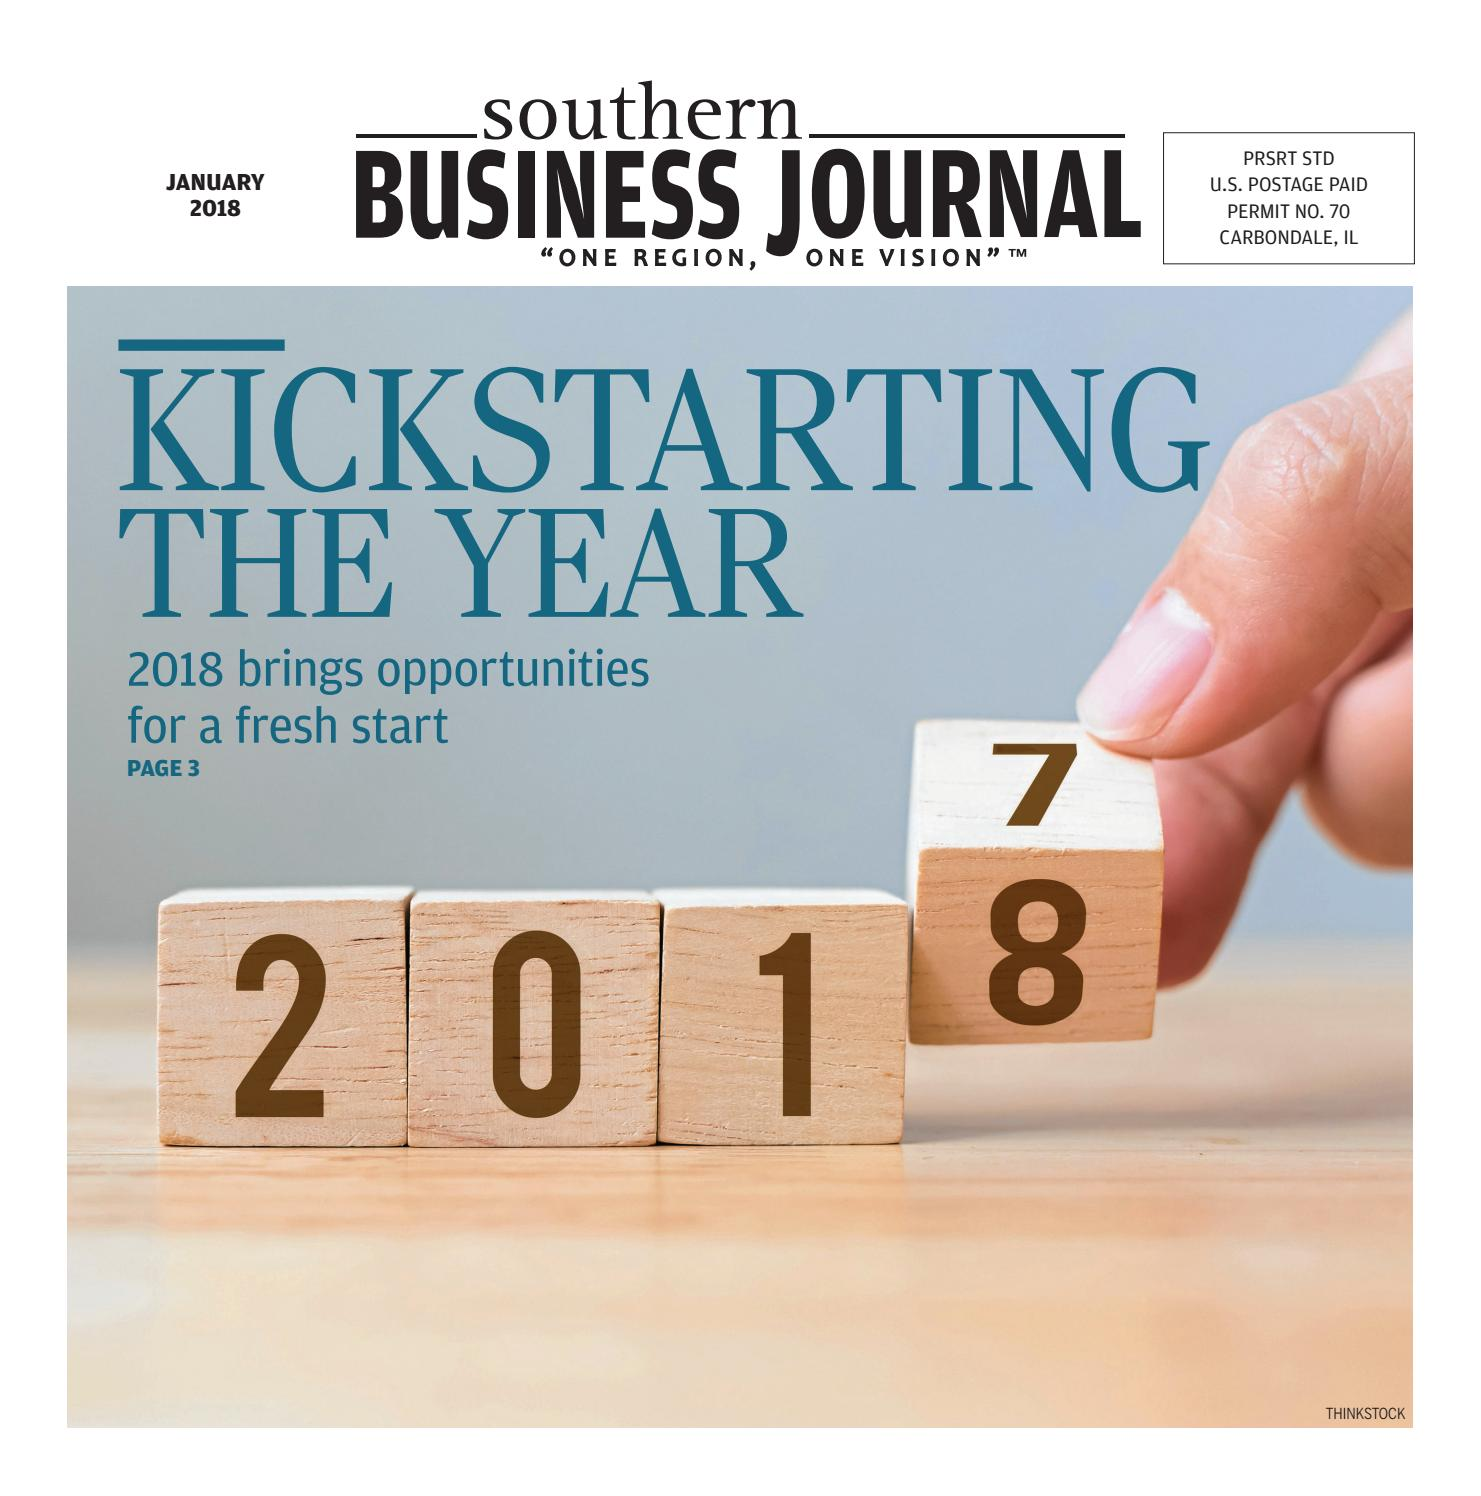 Southern Business Journal by The Southern Illinoisan - issuu